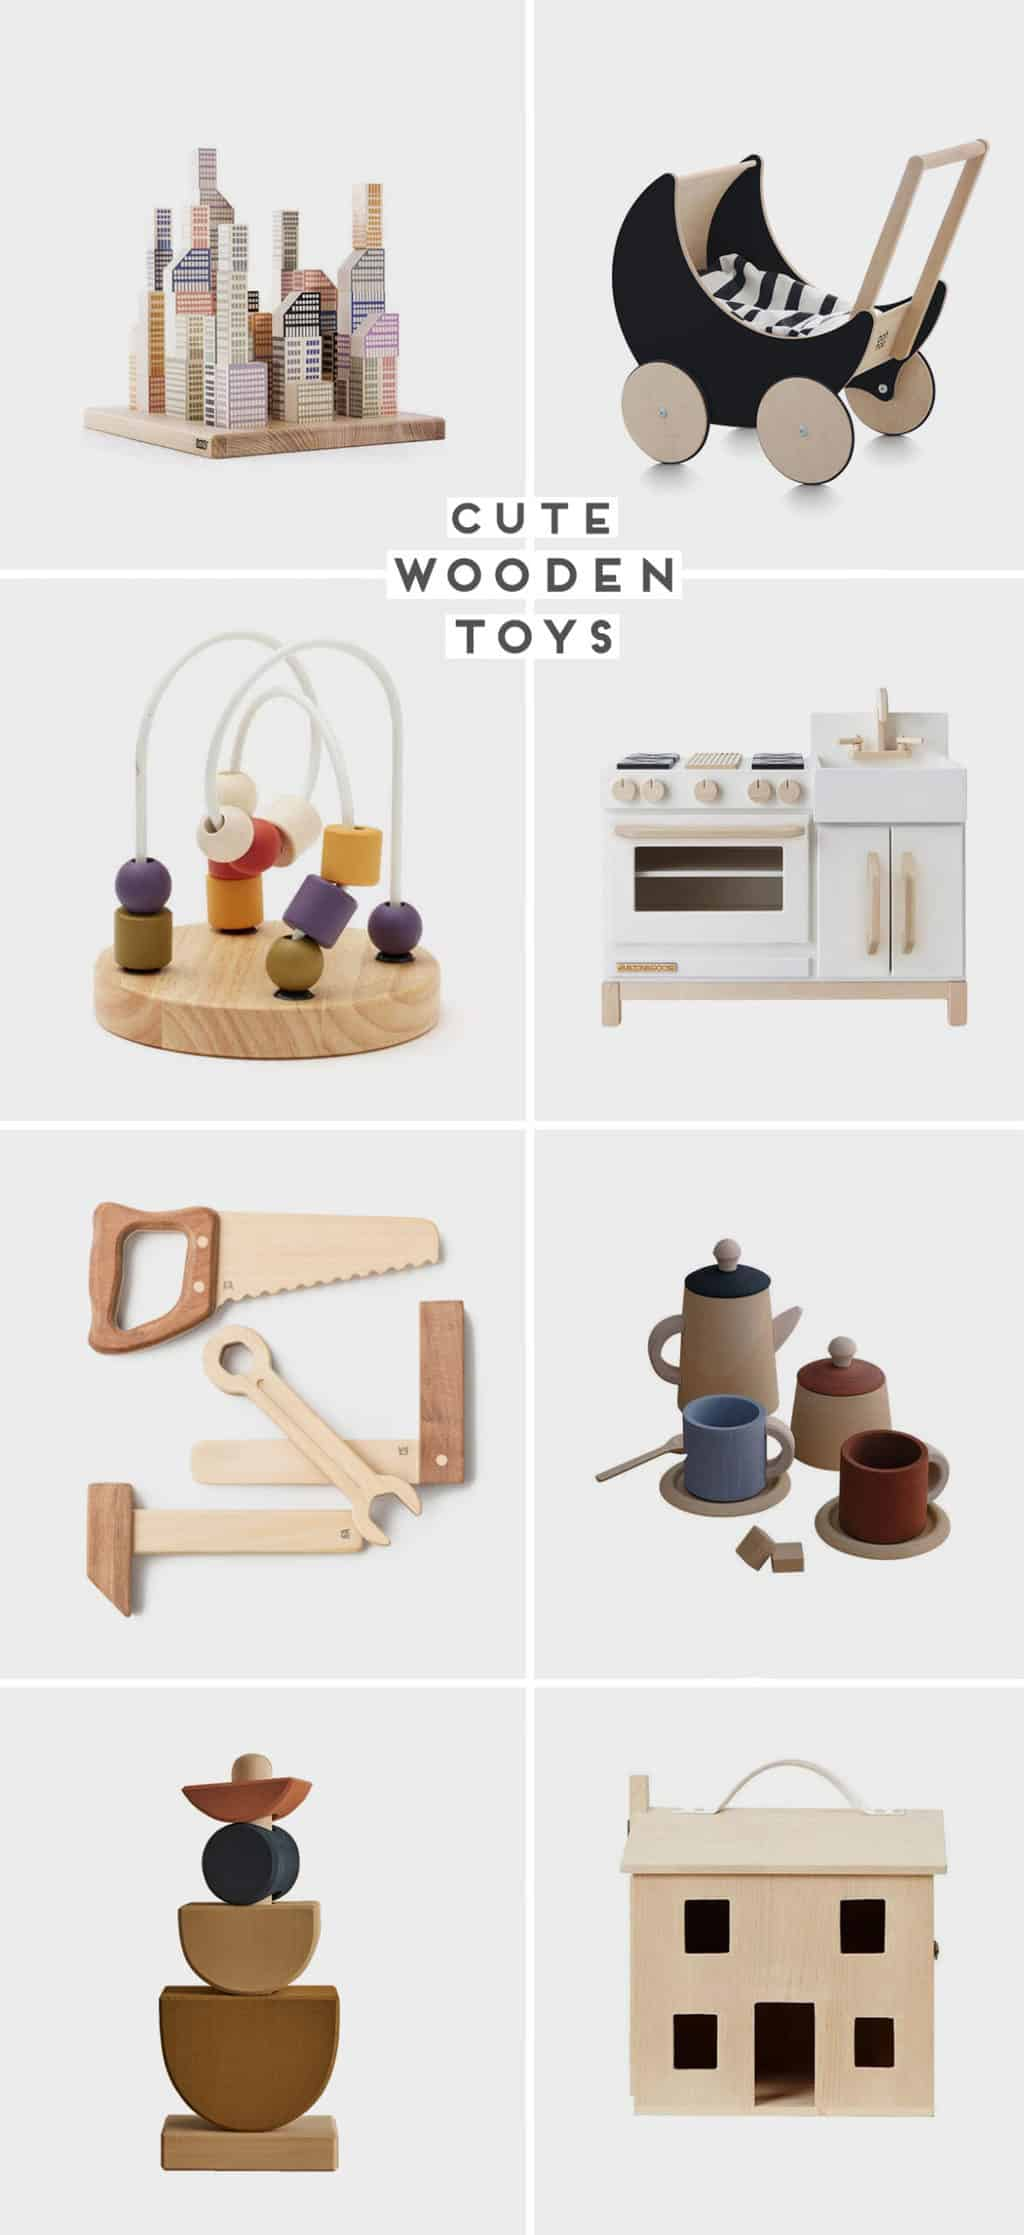 An image of wooden toys for every age range, featuring a dollhouse, tea set, baby stroller, and more.